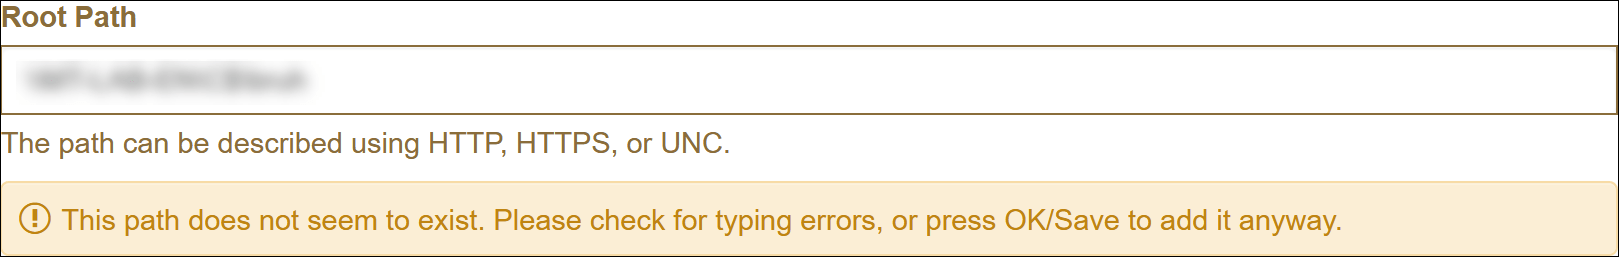 Scan Paths - Path does not exist error